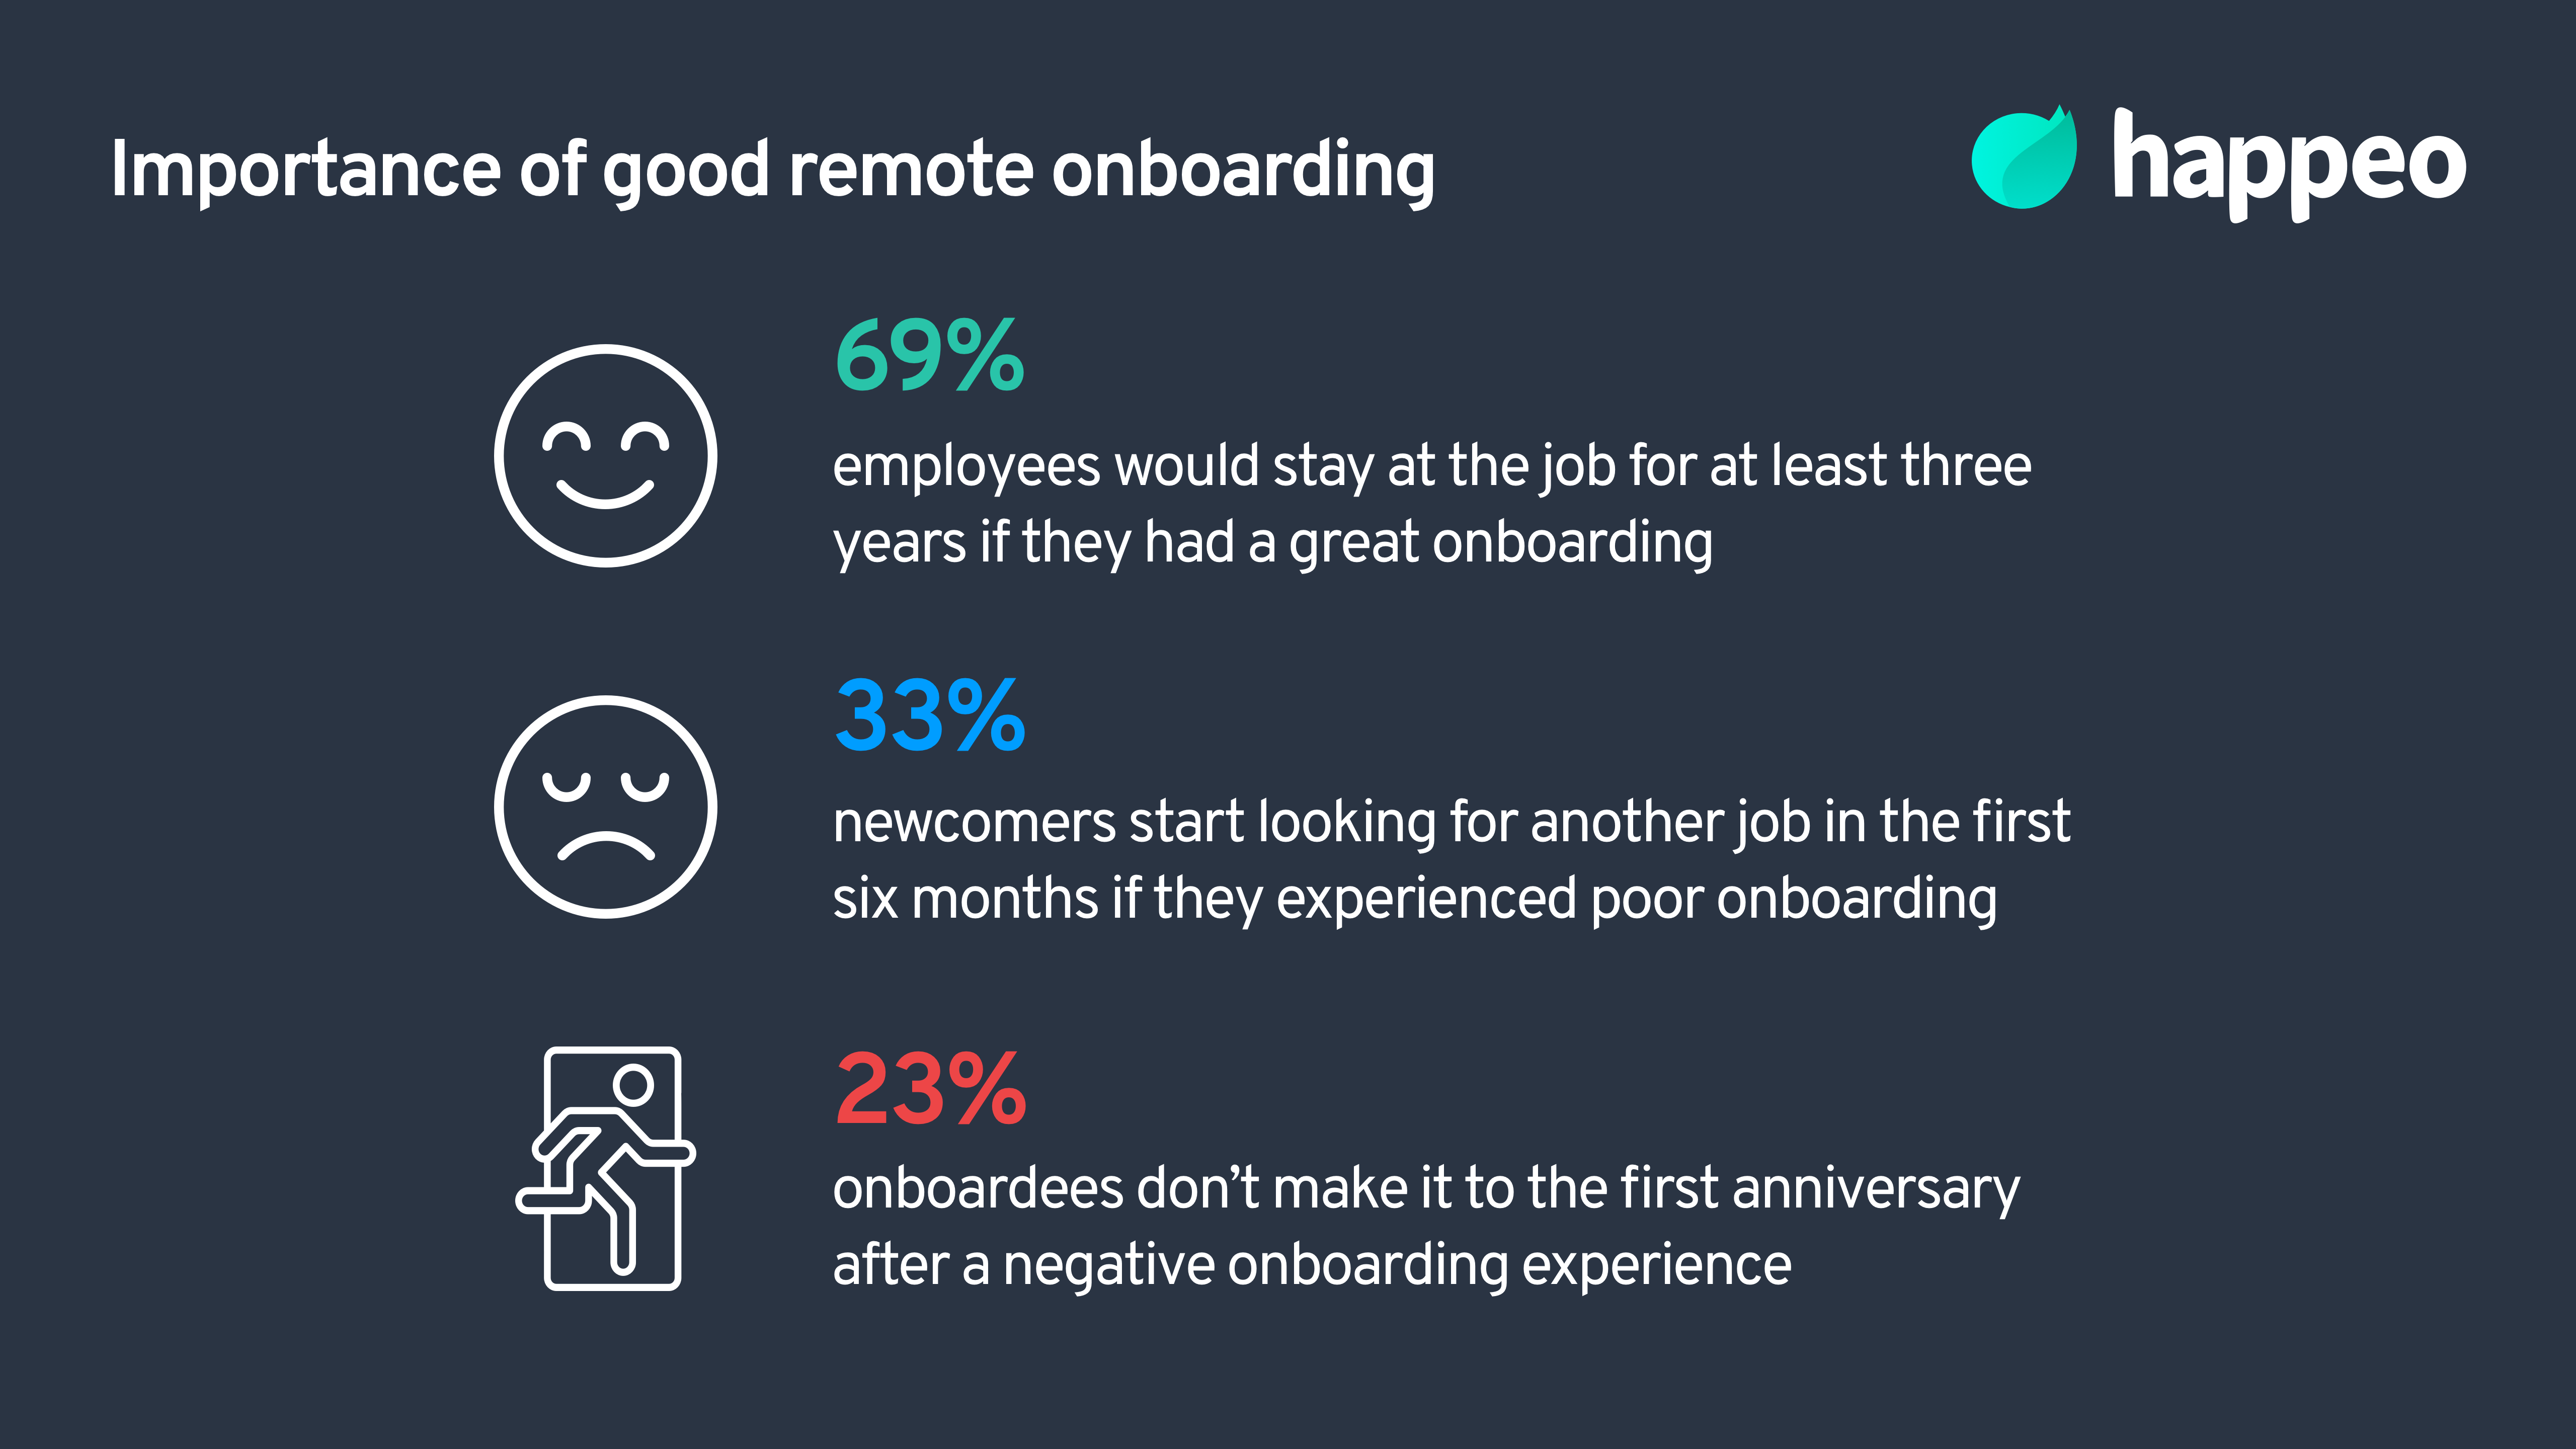 Remote onboarding: Importance